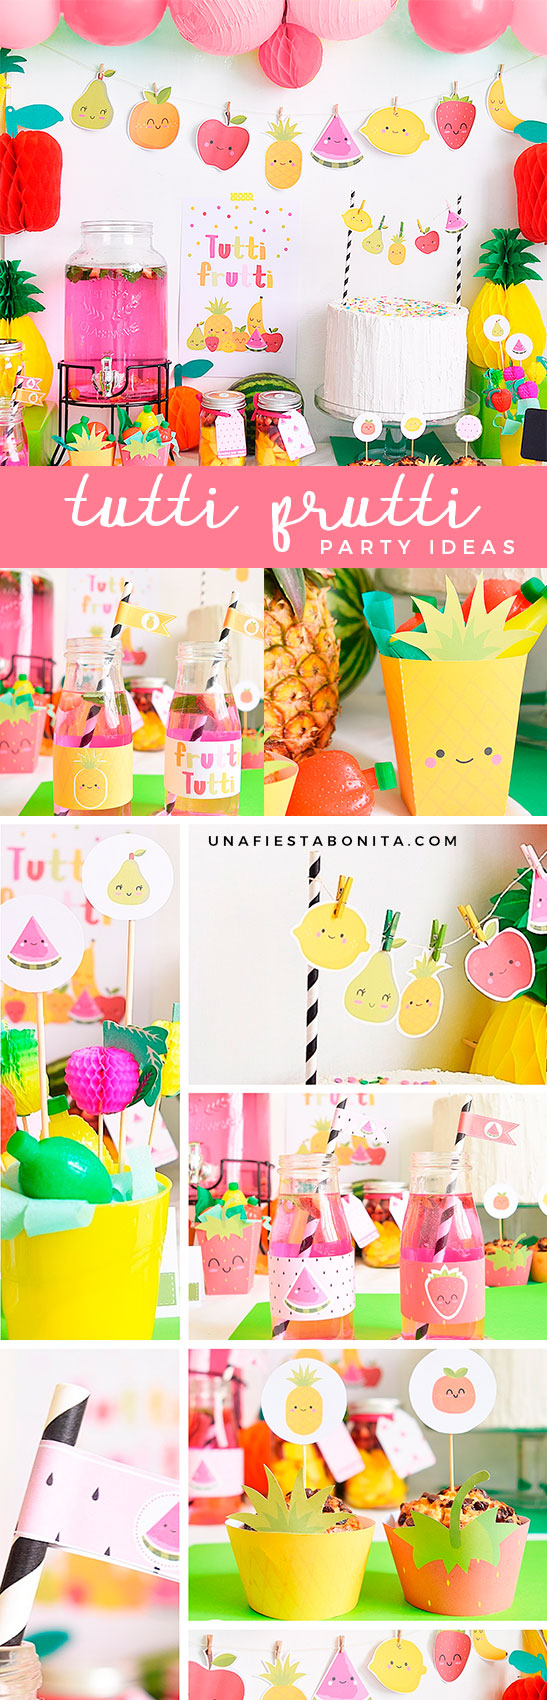 Party ideas Tutti Frutti